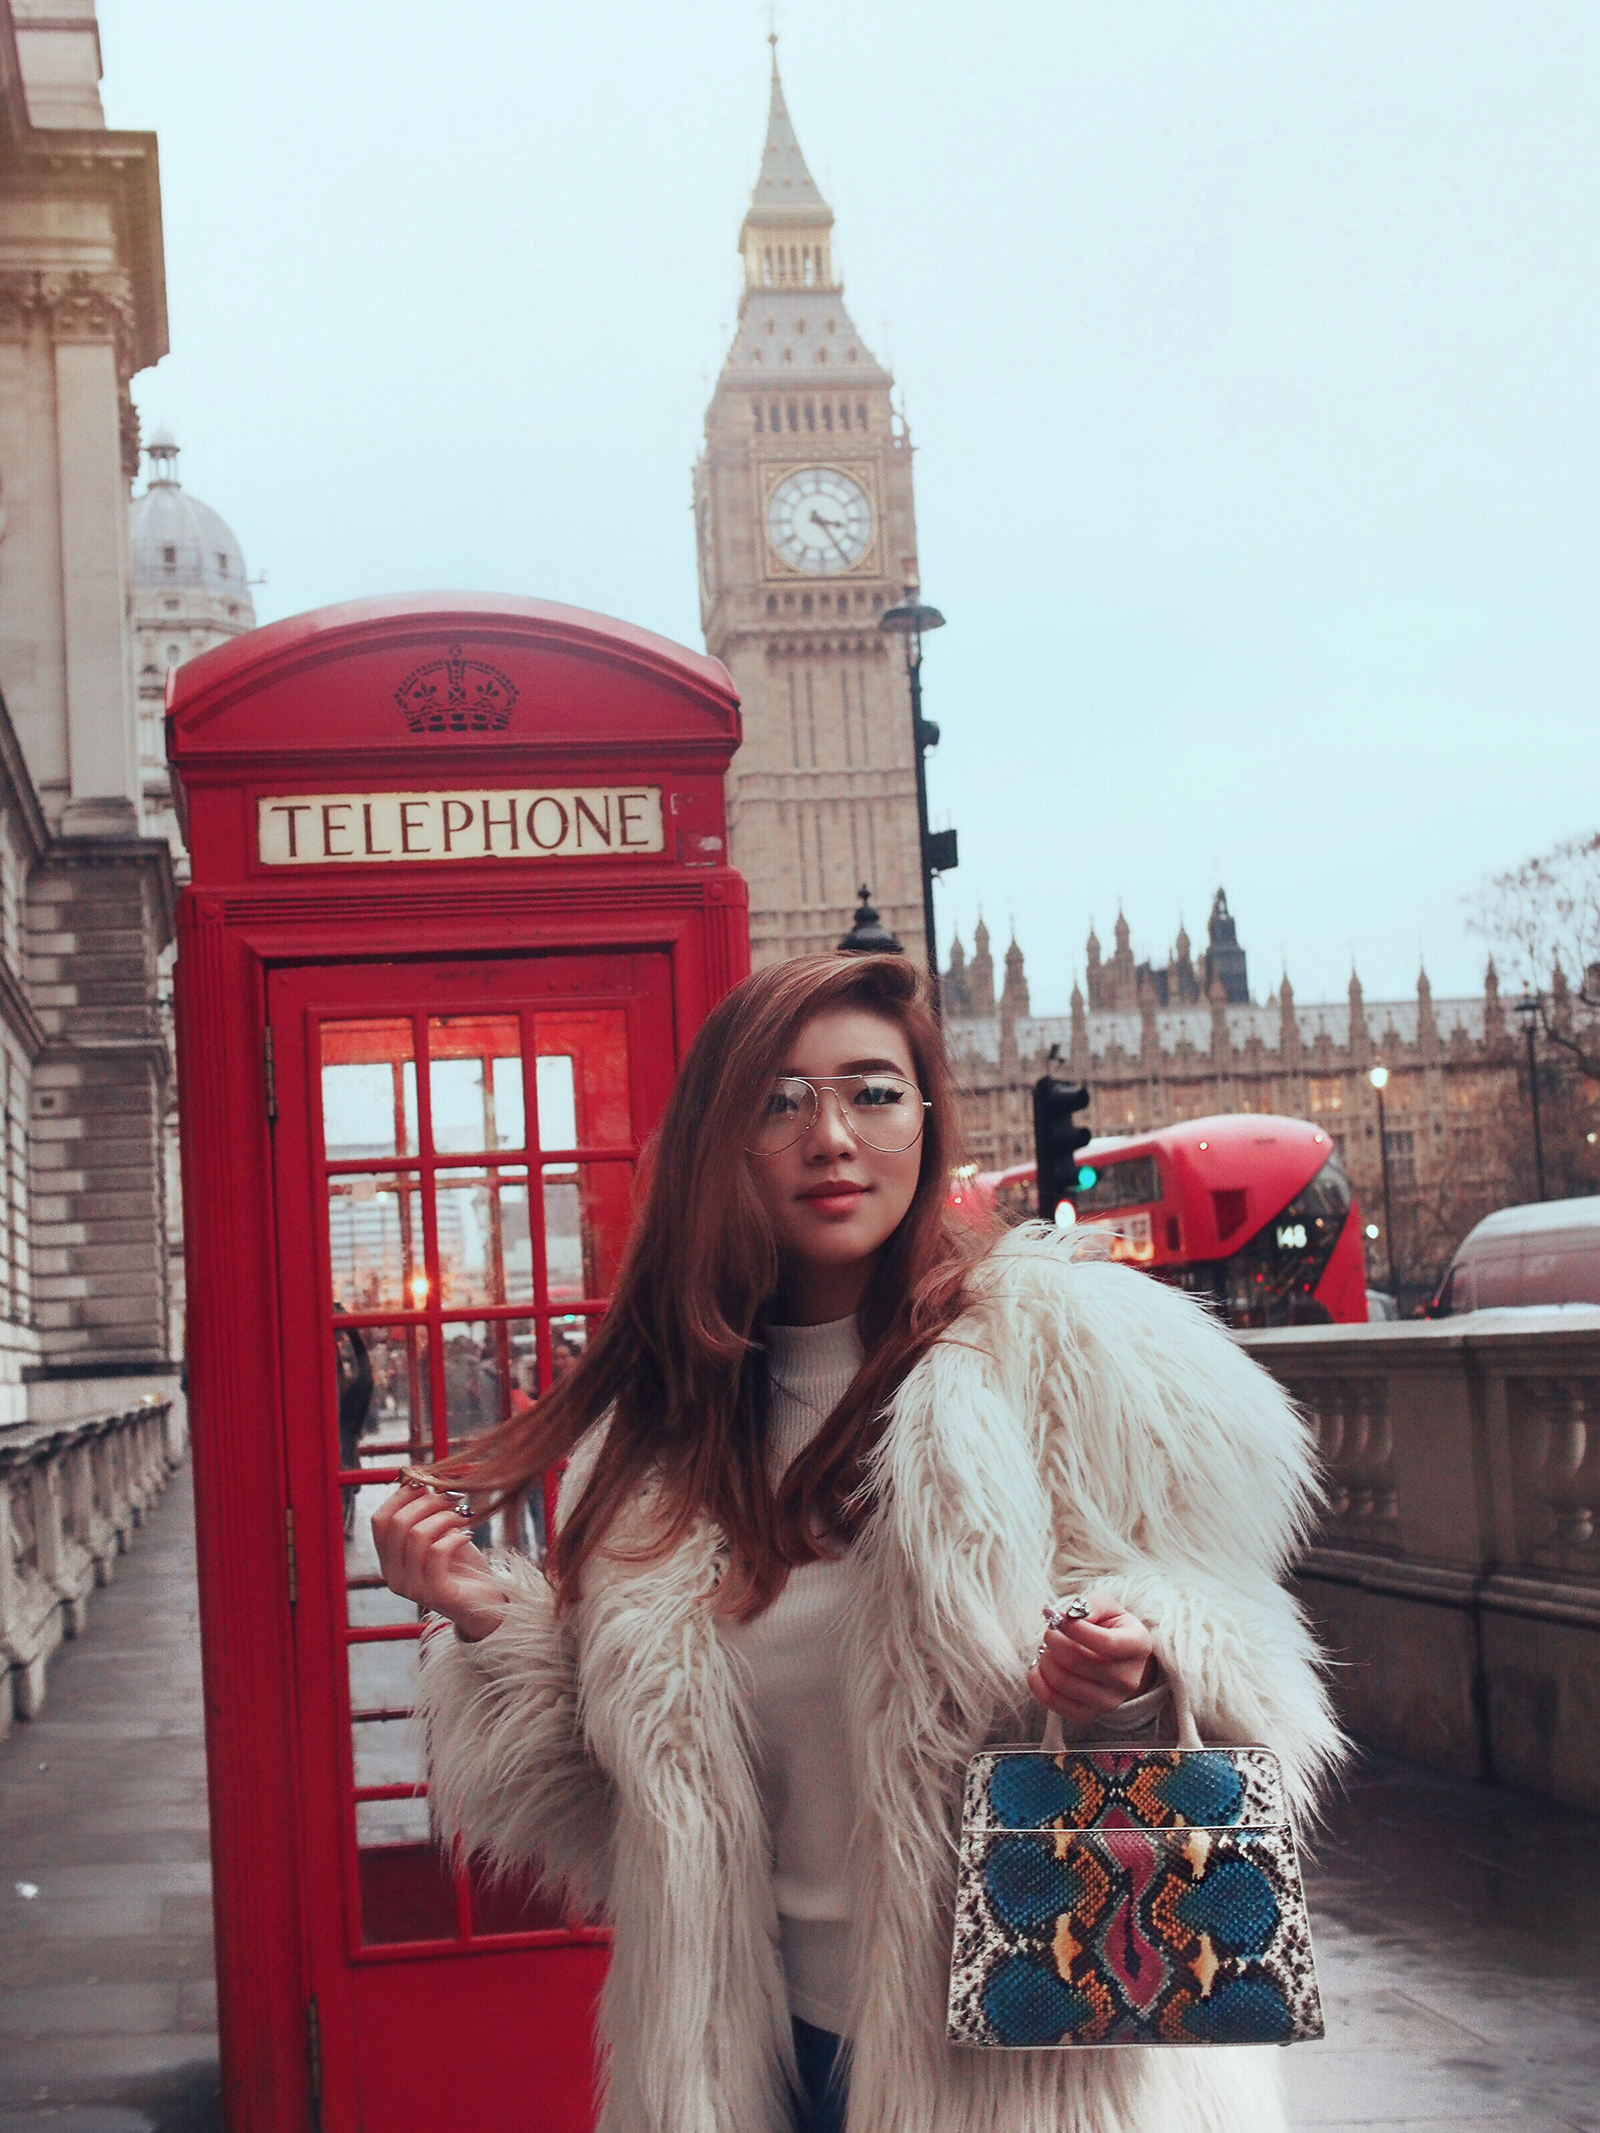 willabelle-ong-paledivision-street-style-fashion-travel-lifestyle-blog-australia-singapore-blogger-london-aigner-munich-cybill-mini-bag-python-exotic-skin-2